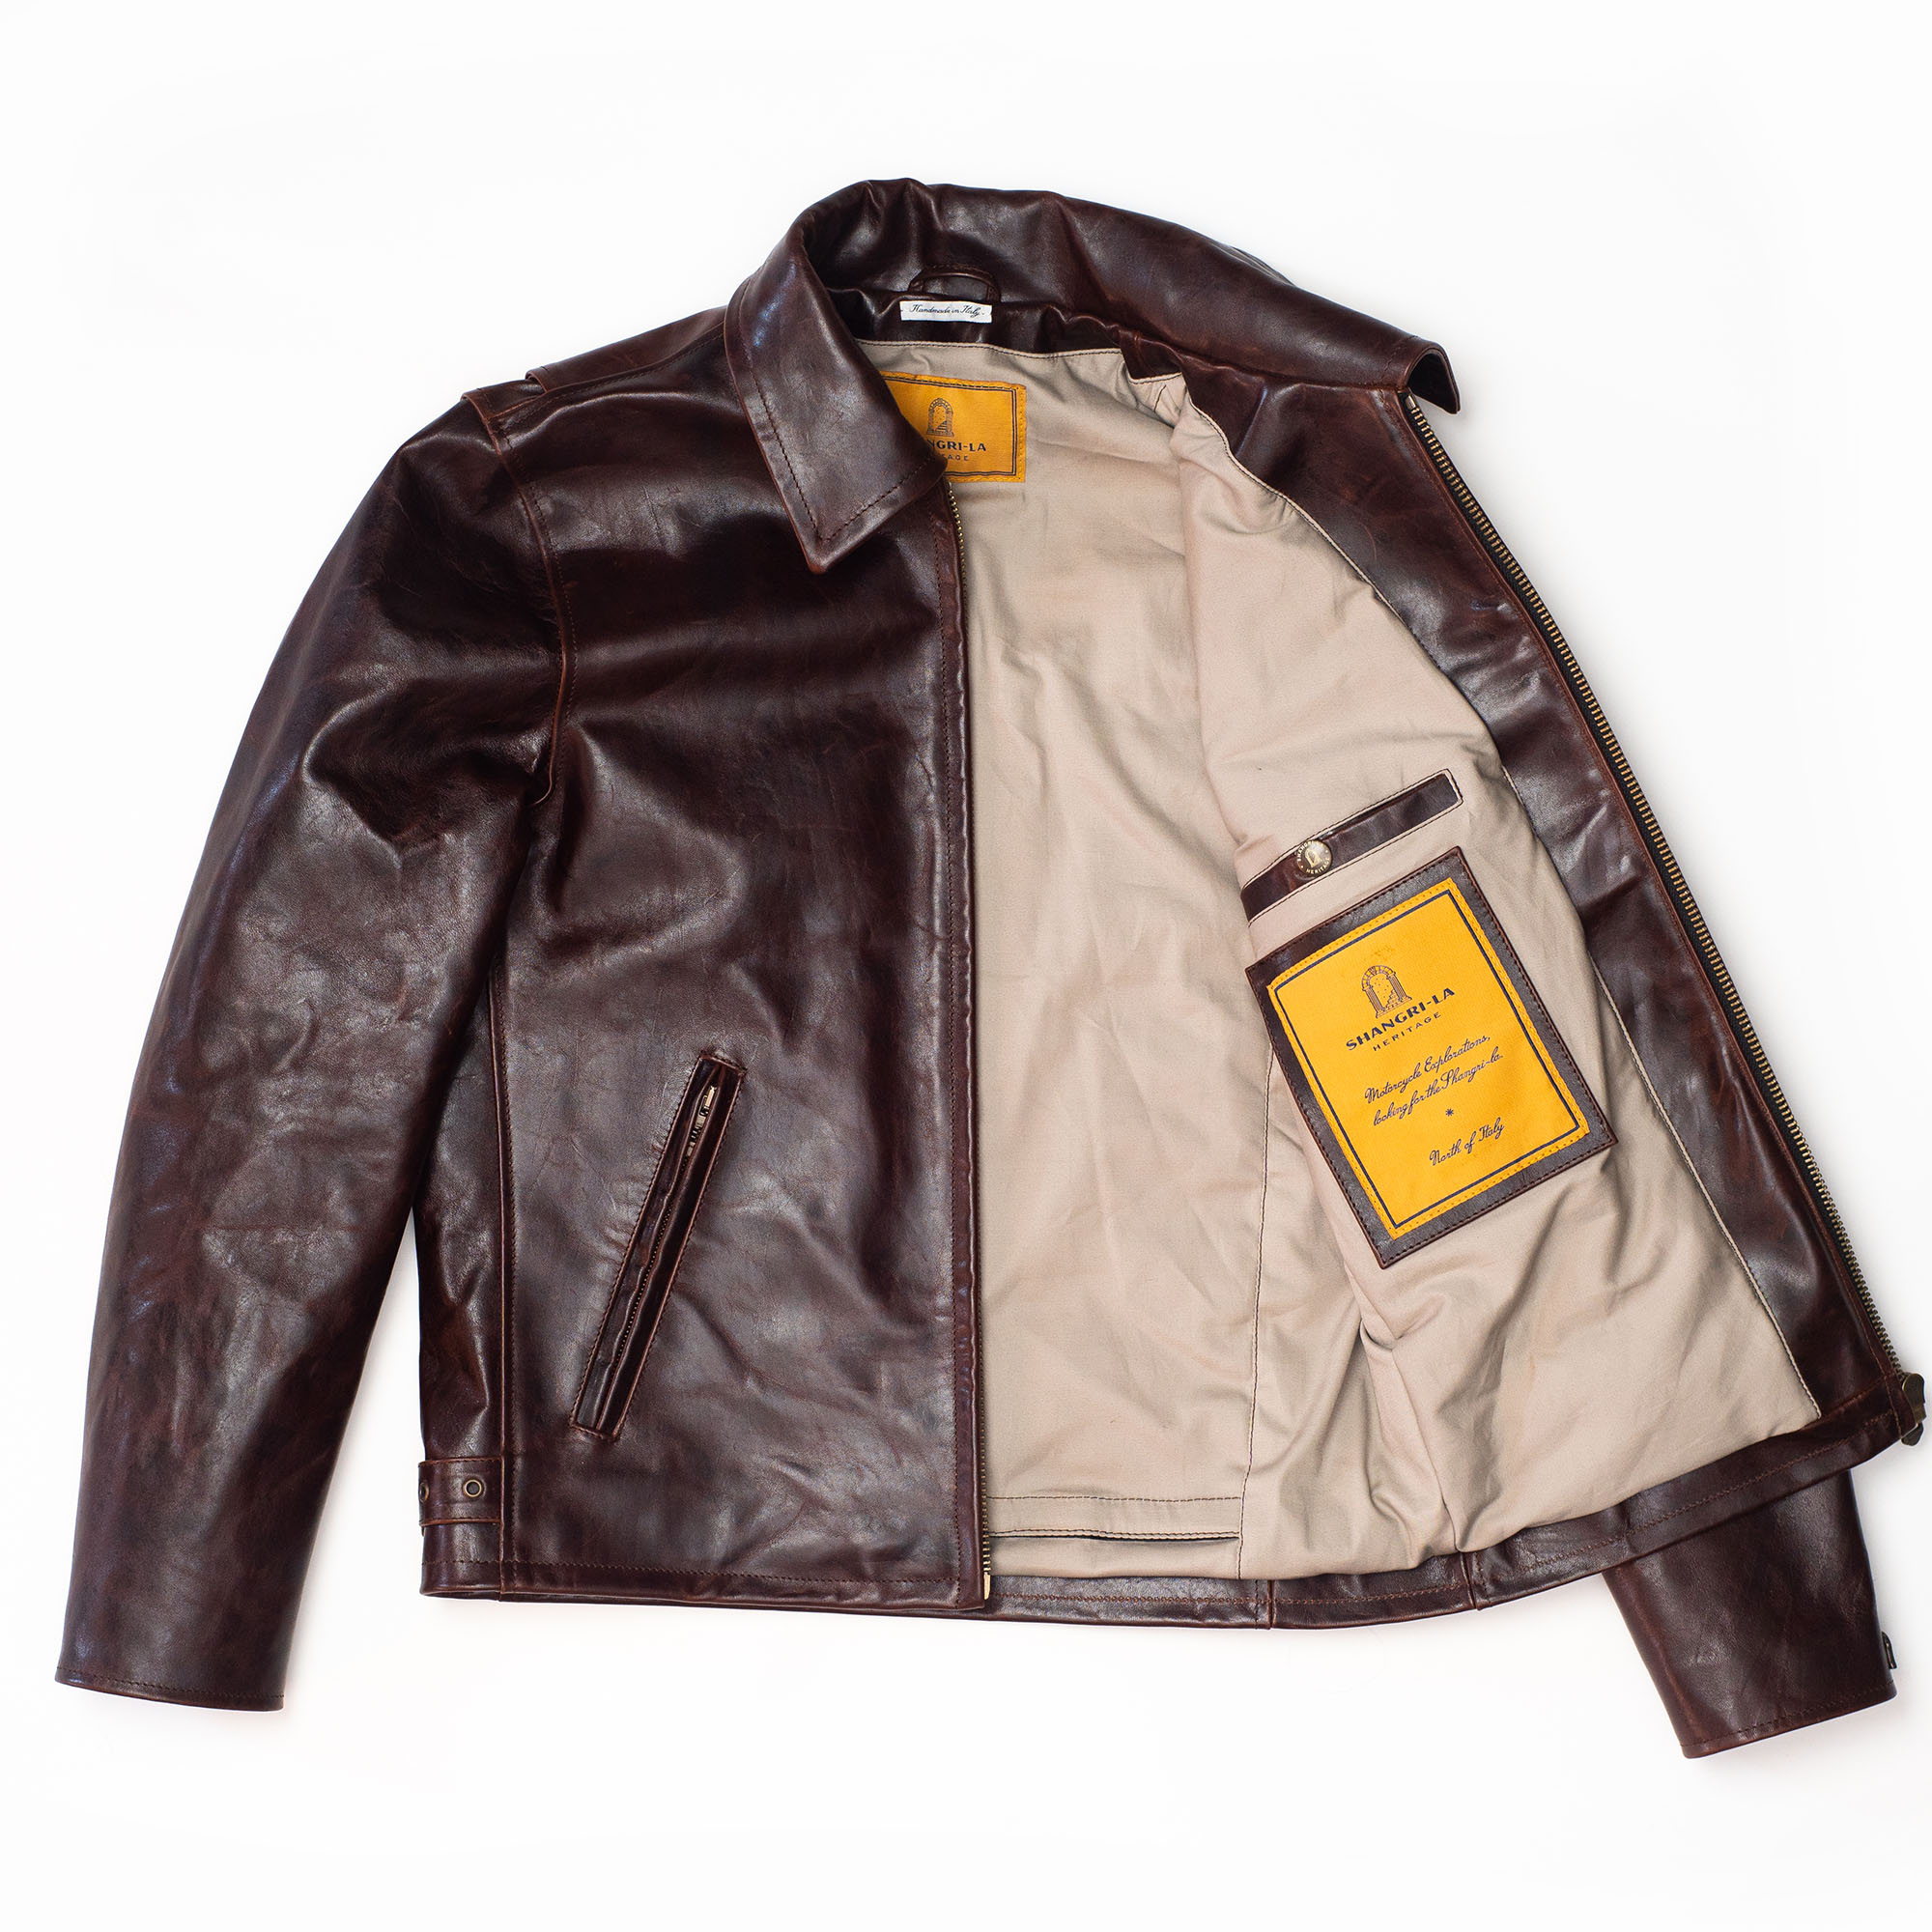 shangri-la-heritage-varenne-whiskey-horsehide-leather-jacket-still-life-open